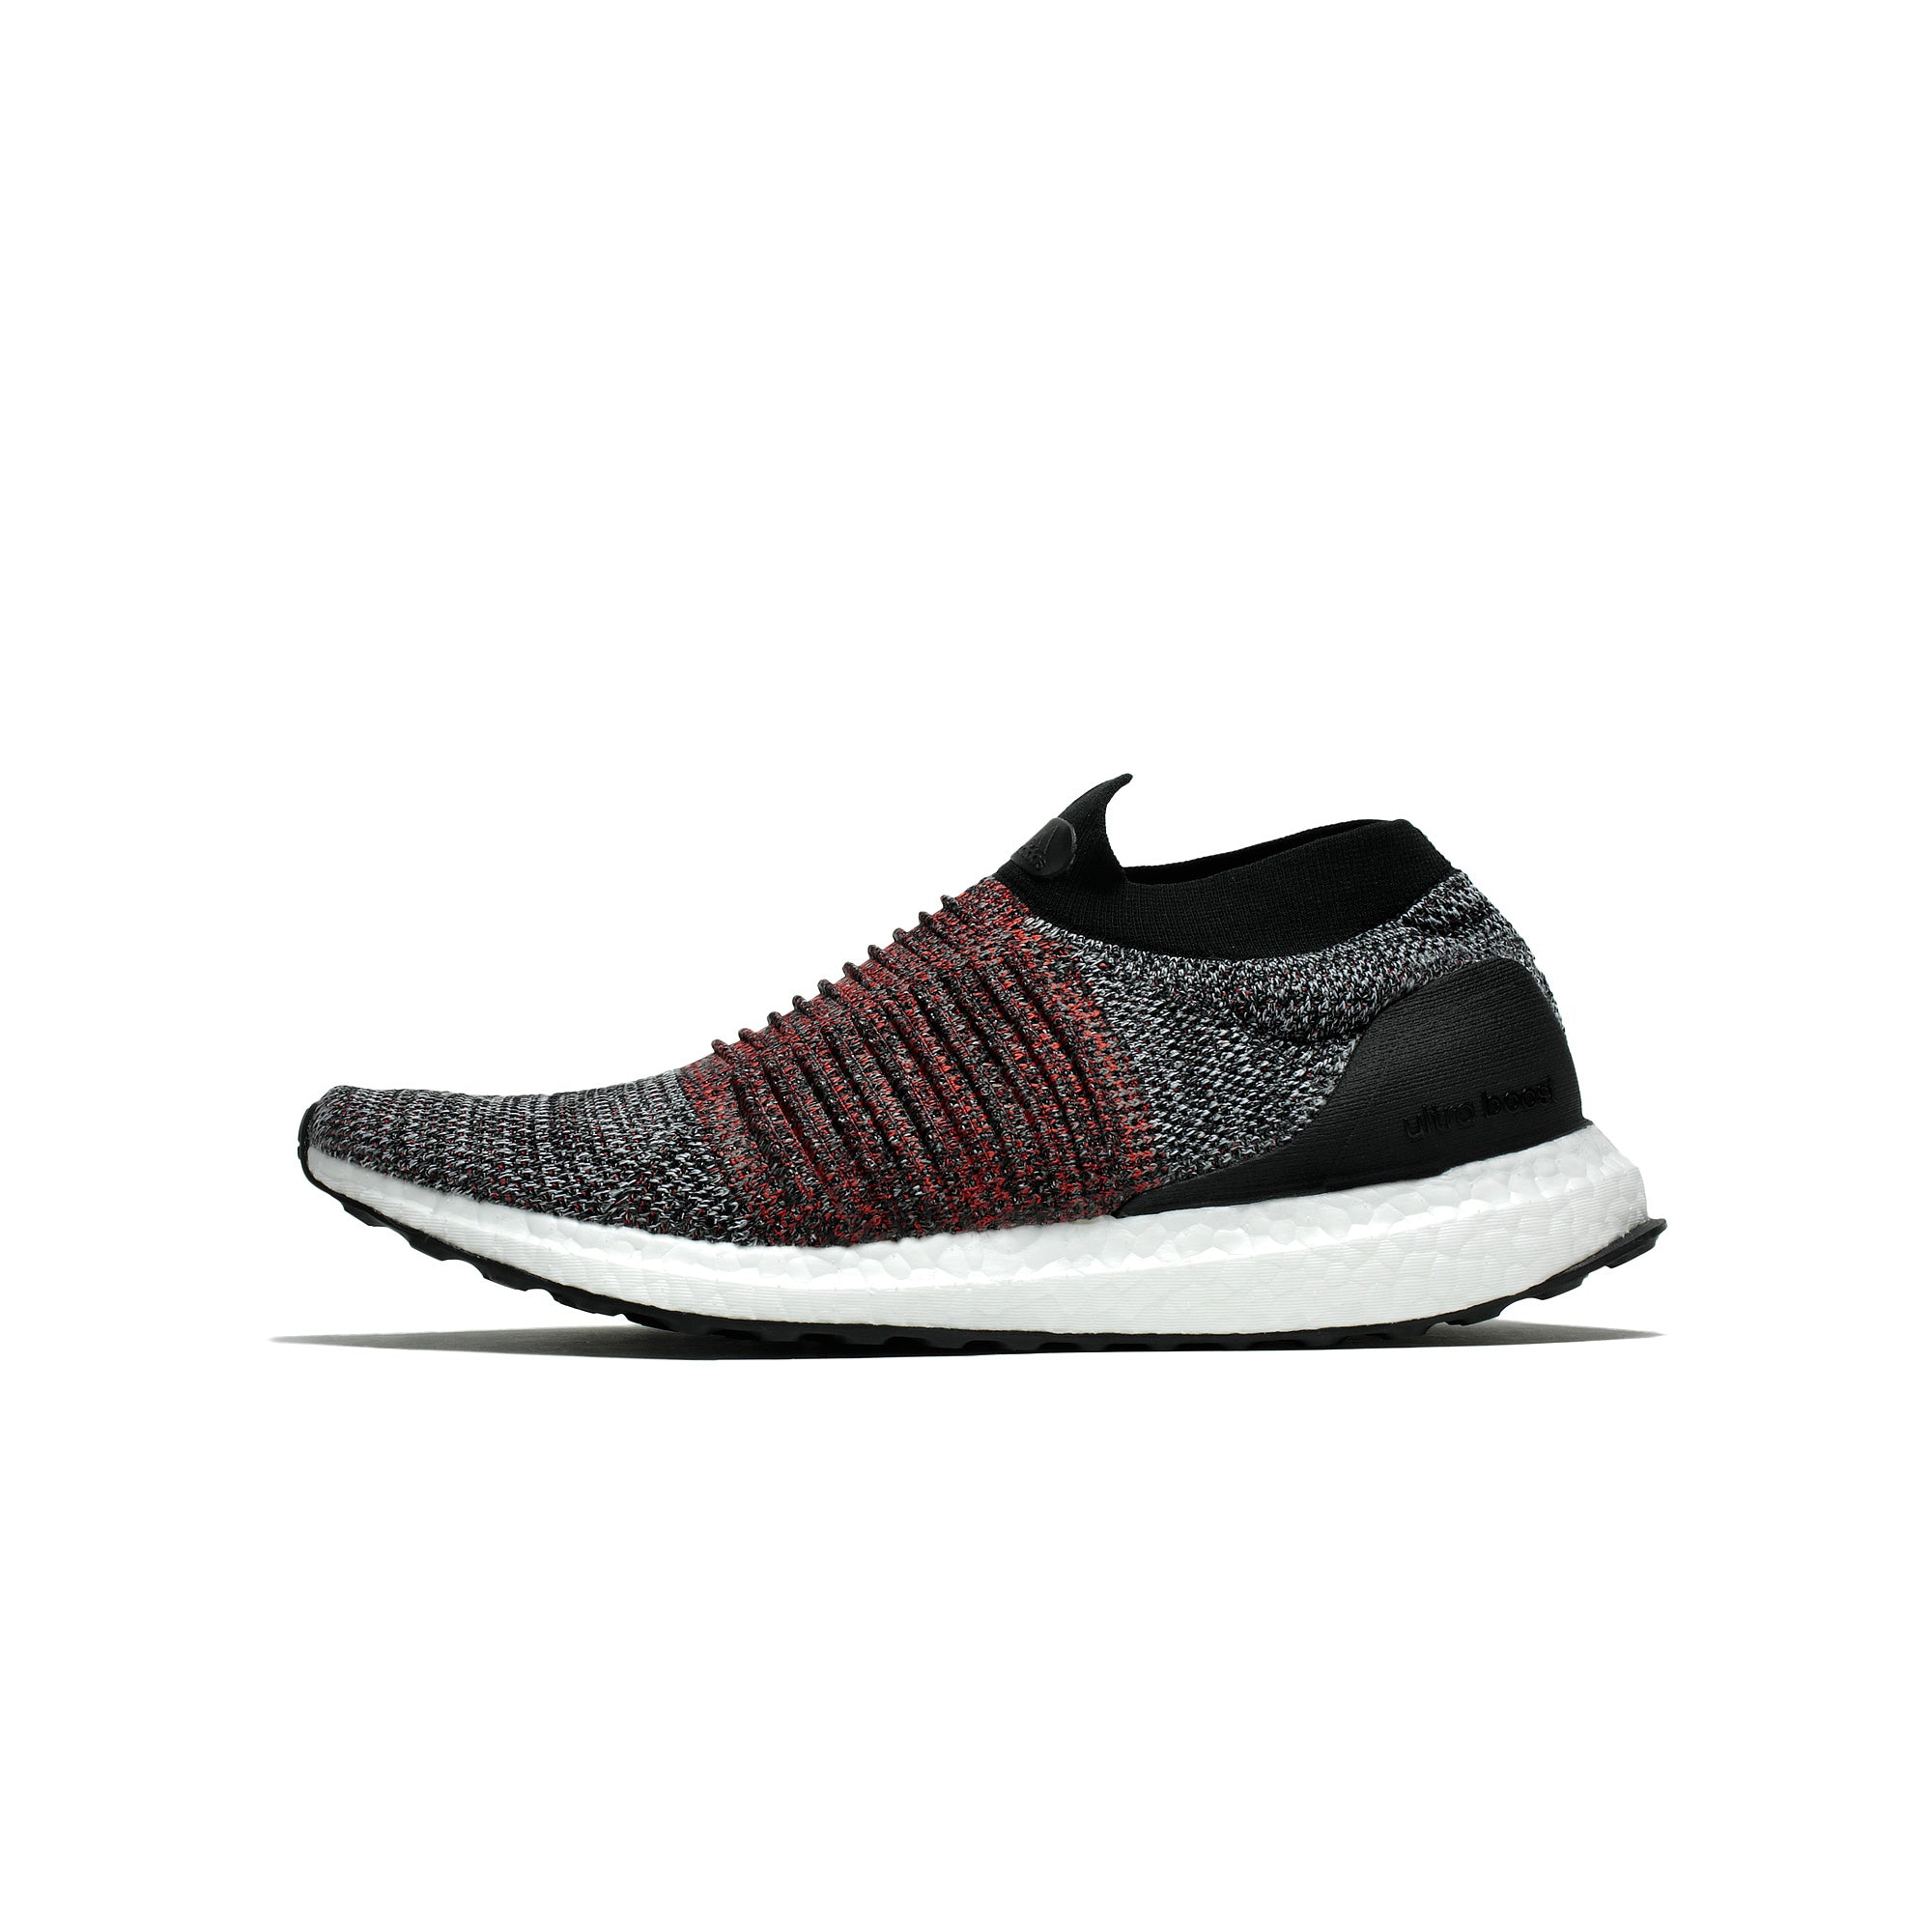 adidas uomini ultraboost laceless [s80769]